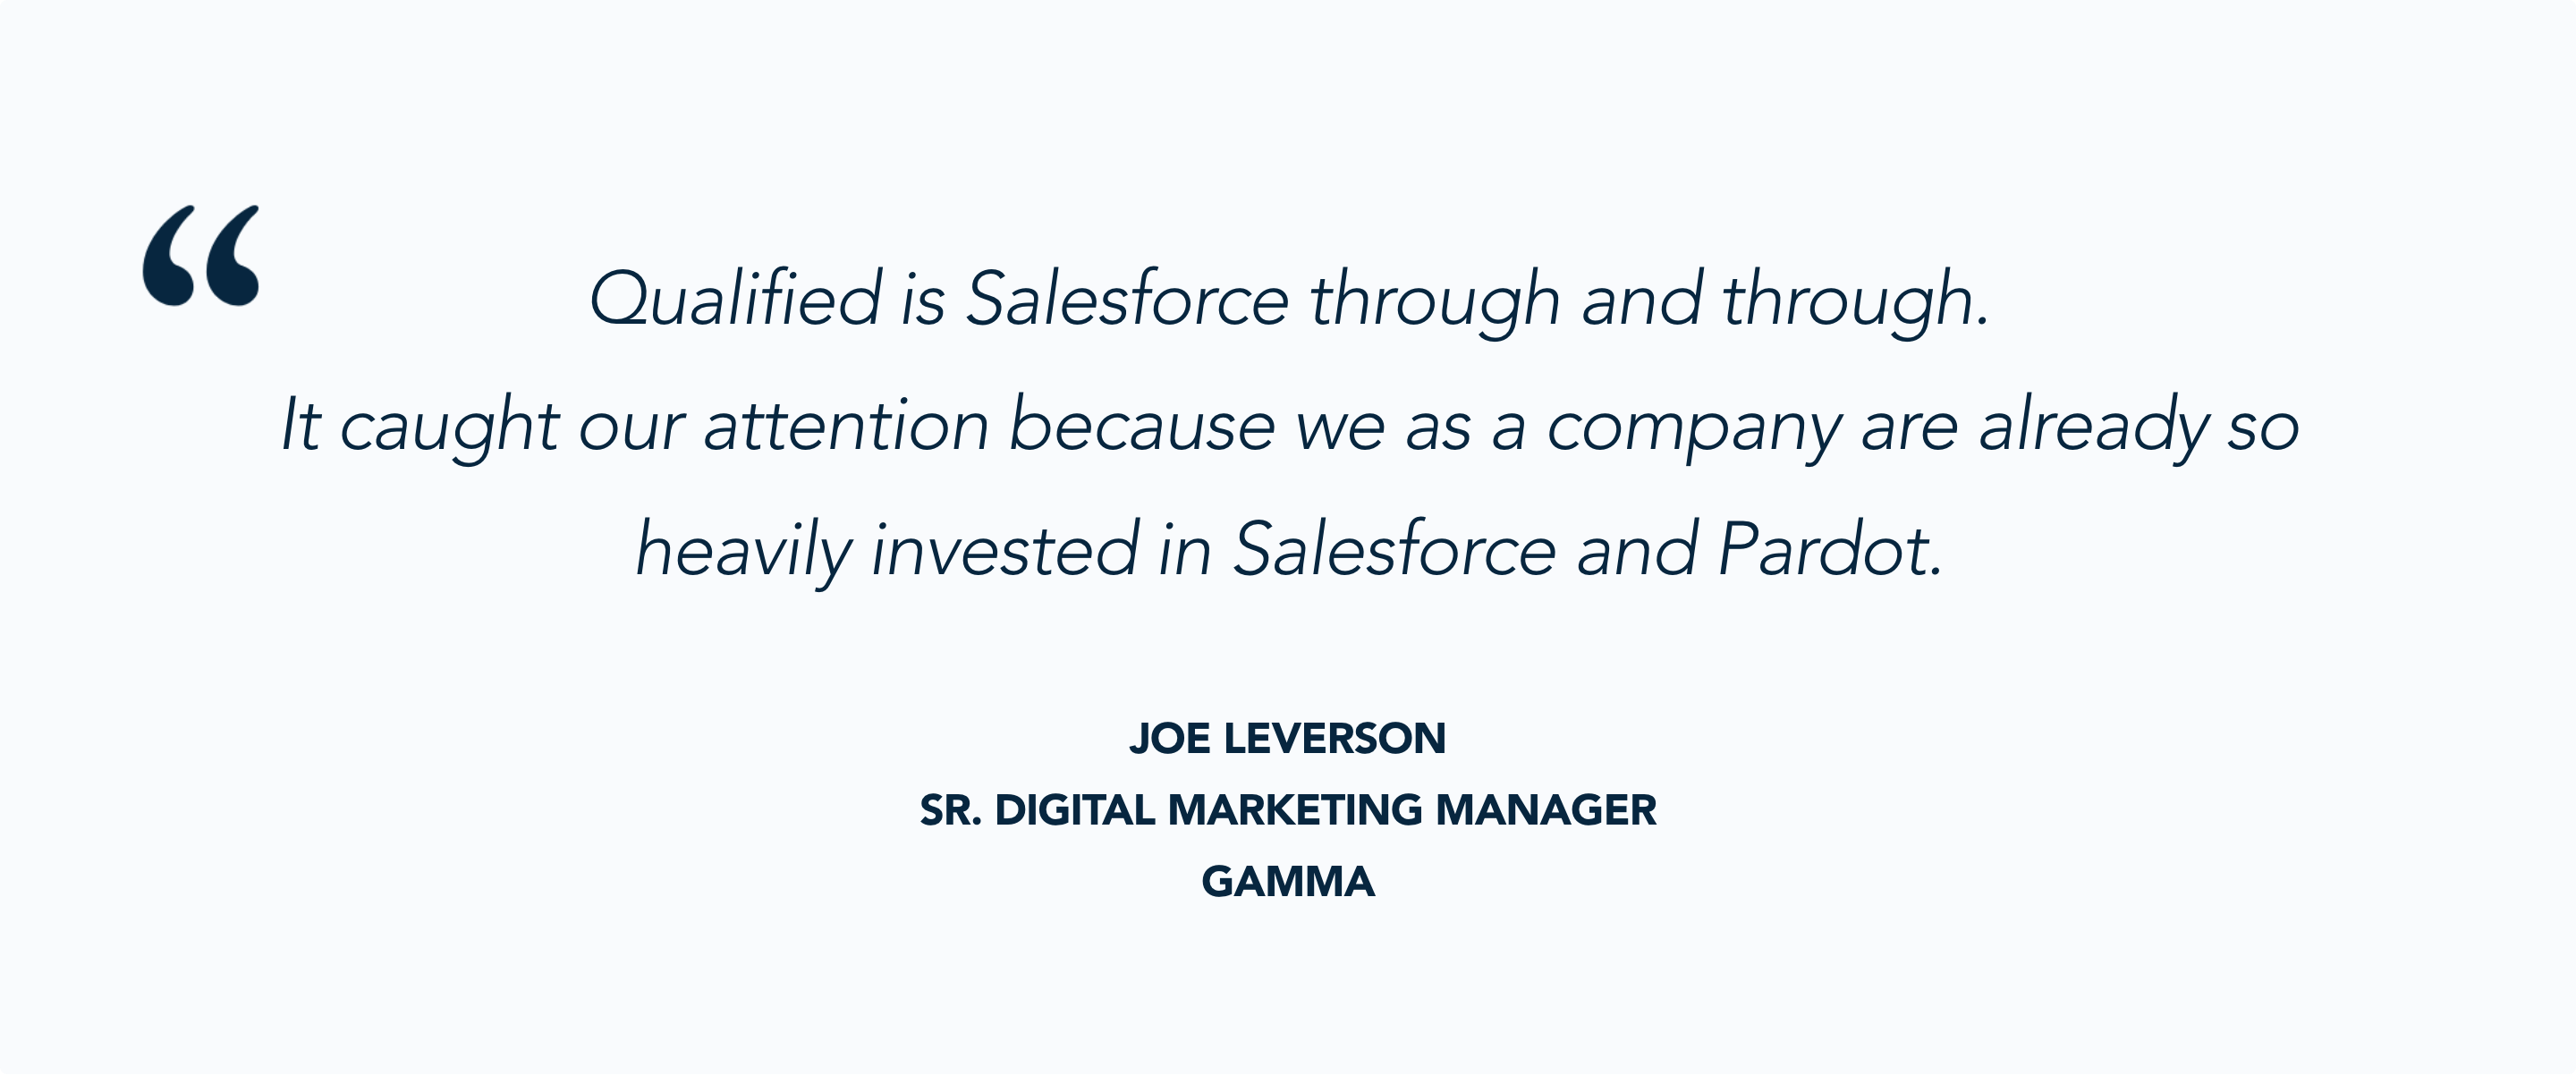 Gamma selected Qualified because of its strong Salesforce and Pardot integration